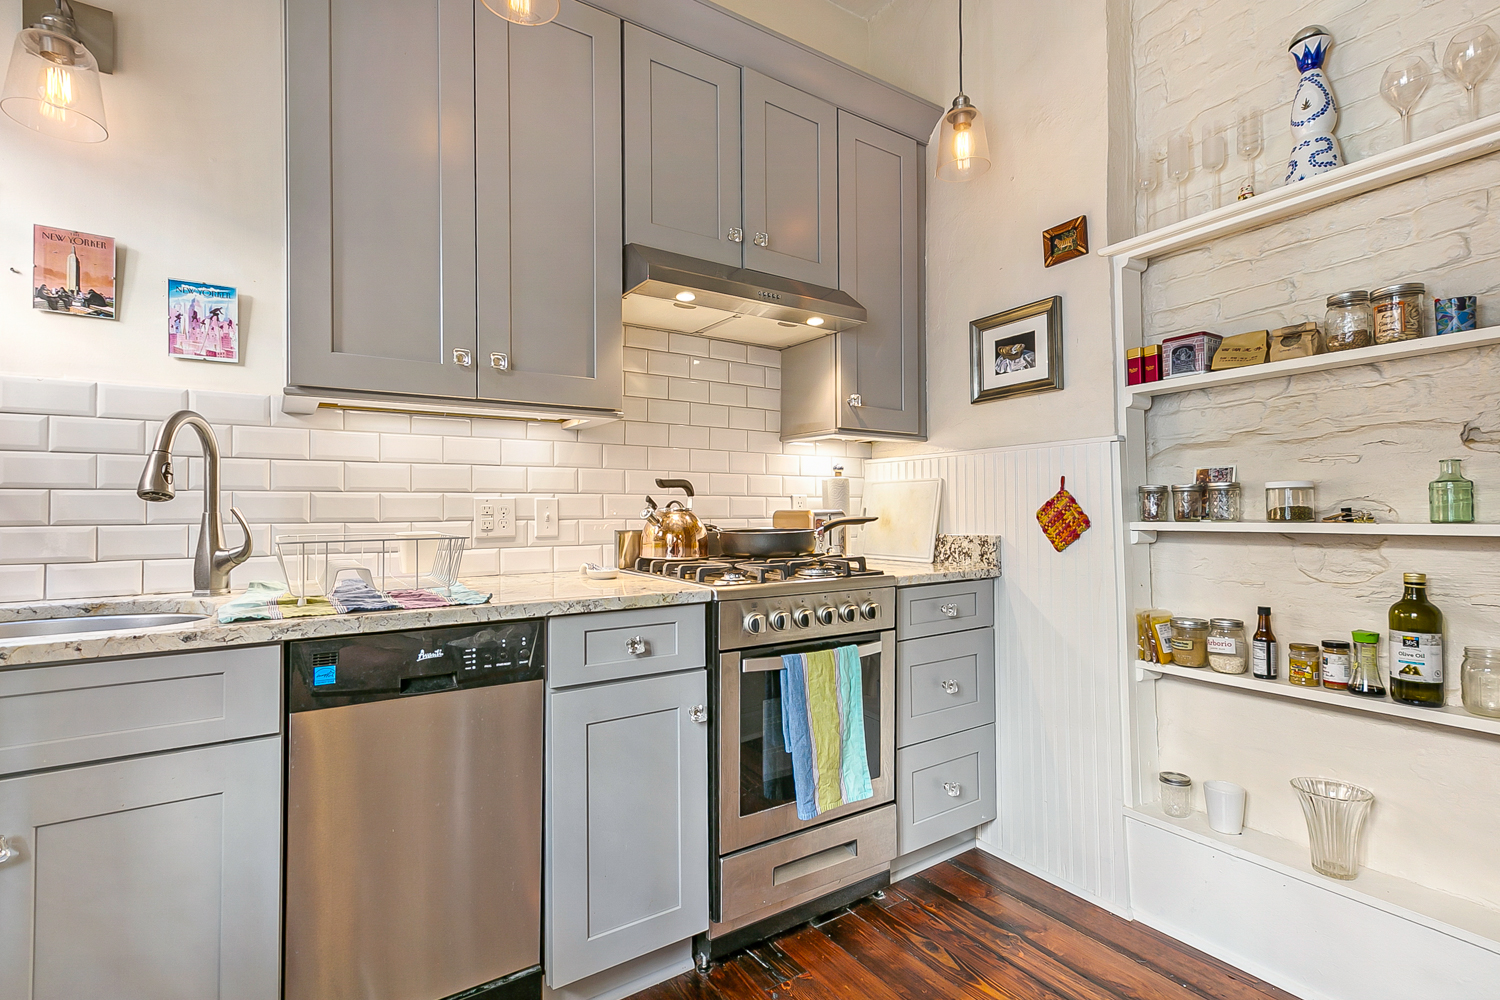 French Quarter, Condo, 1 beds, 2.0 baths, $2400 per month New Orleans Rental - devie image_5